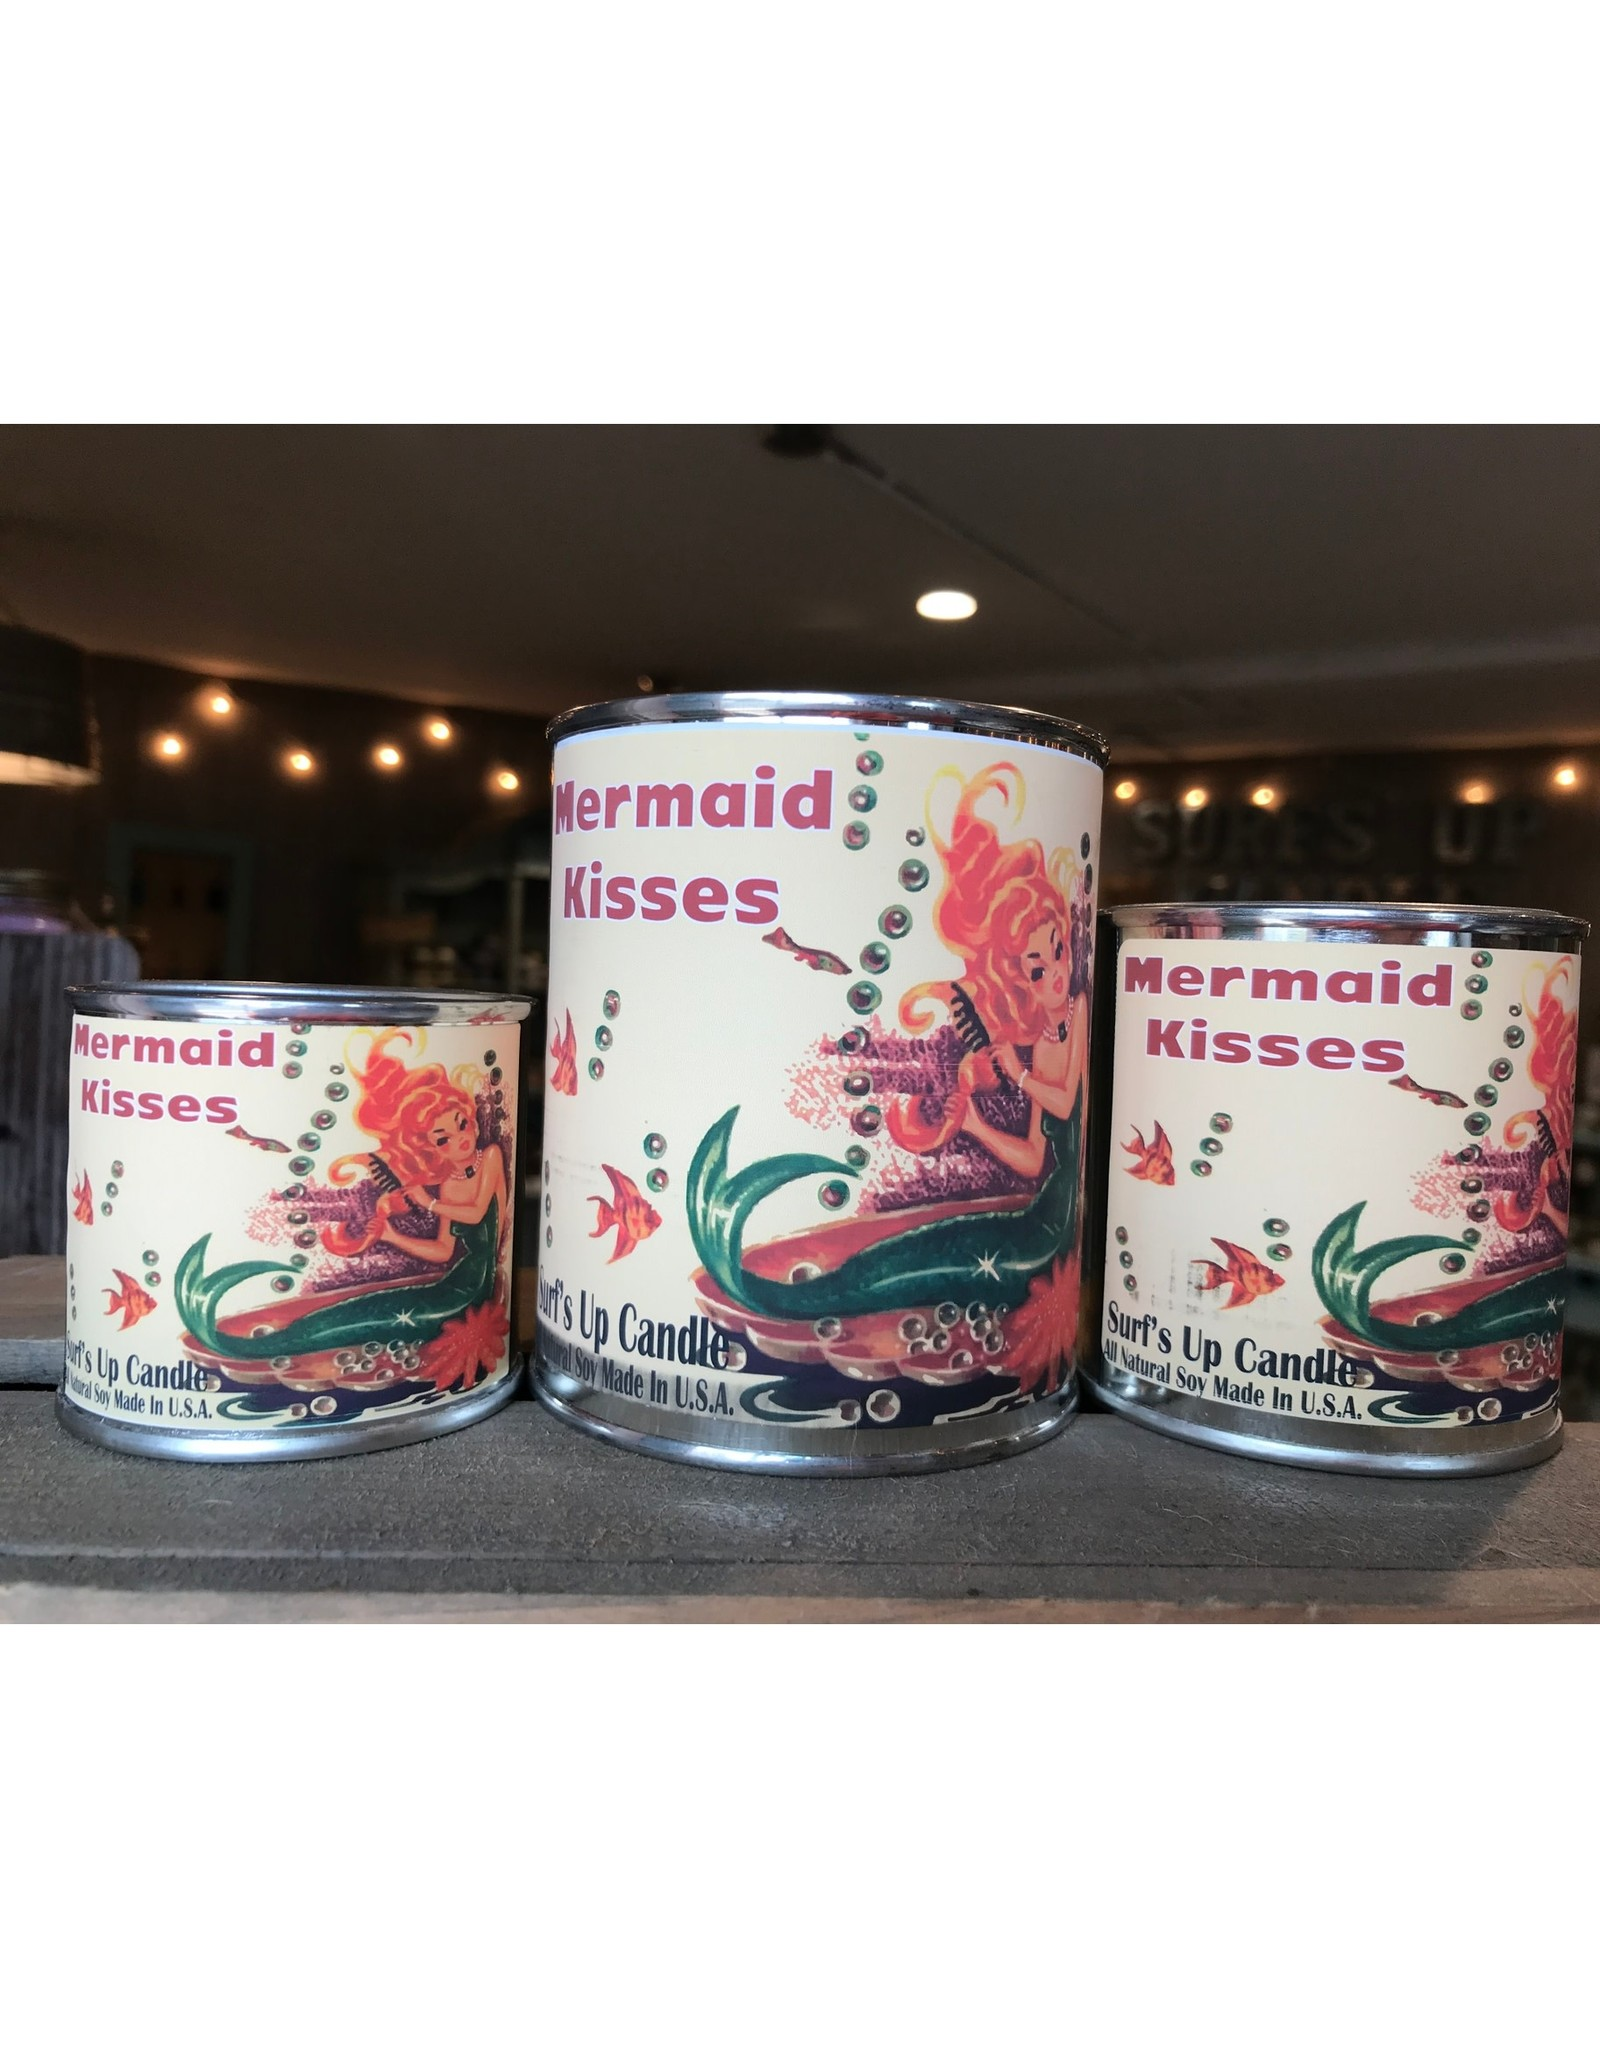 Surfs Up Candle Mermaid Kisses Paint Can Candle - 1/4 Pint